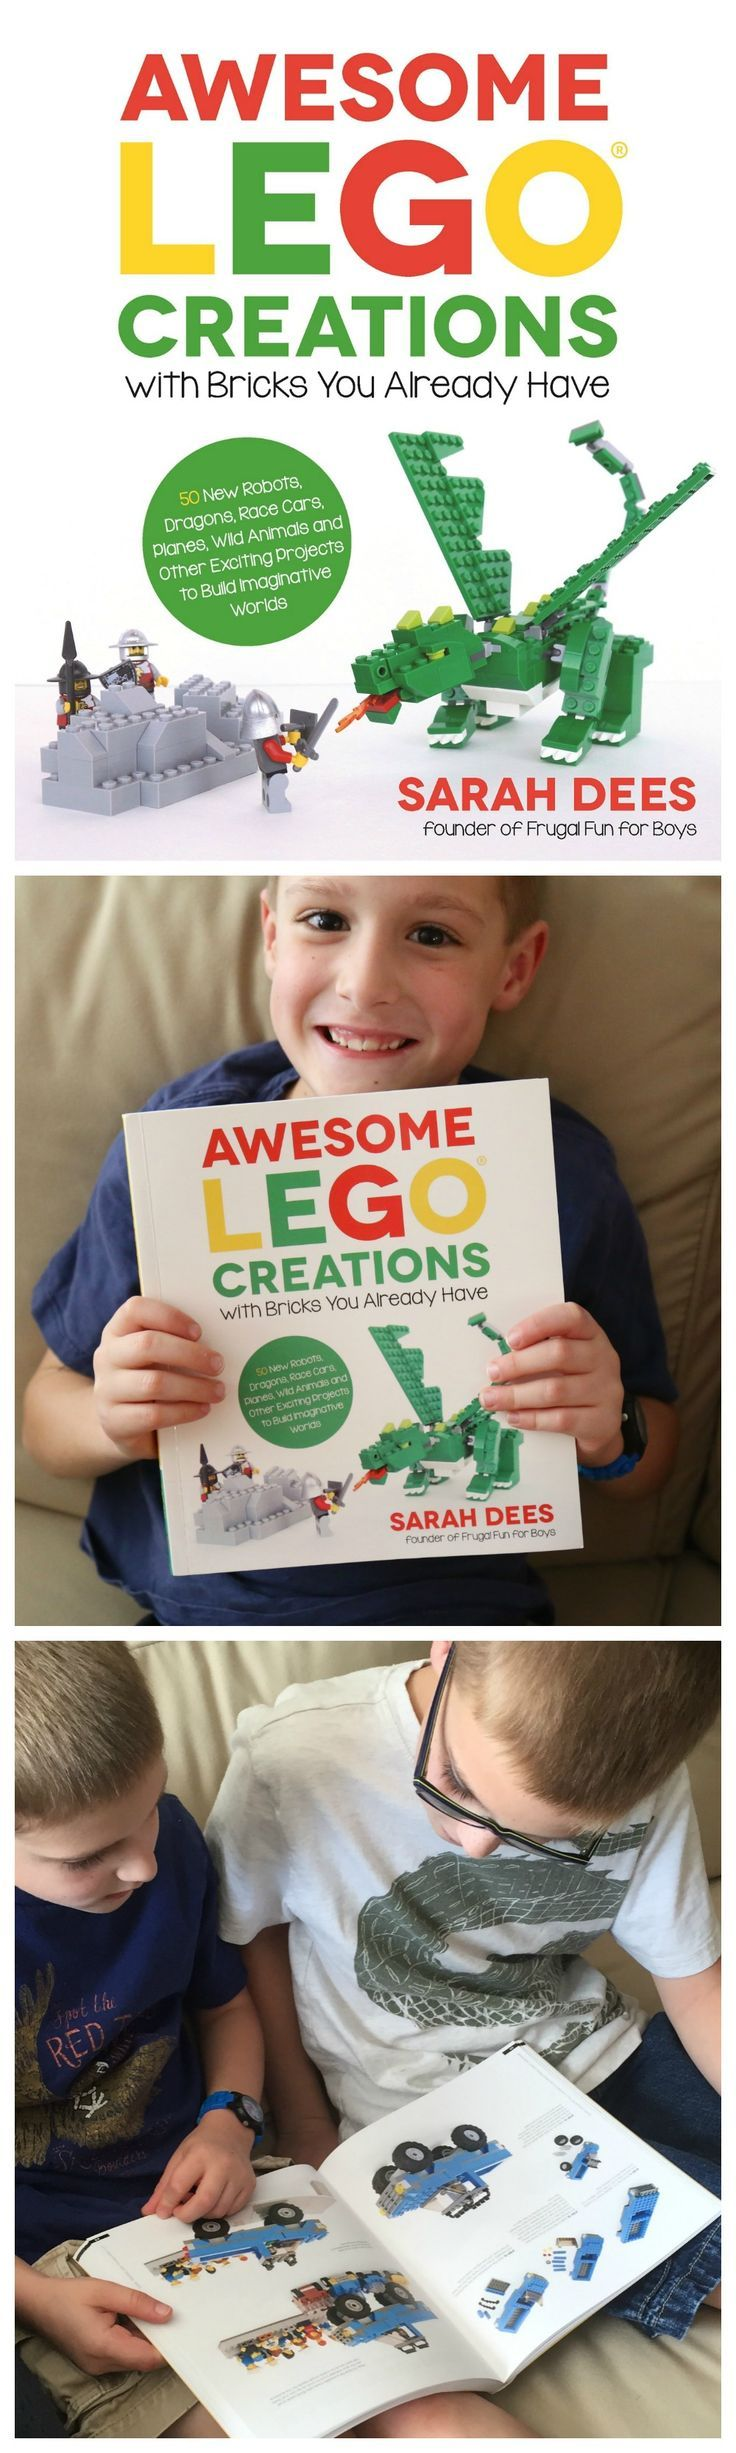 A Look Inside Awesome LEGO Creations with Bricks You Already Have (Our LEGO Book!) 50 exciting new projects to build, with parts lists and instructions!